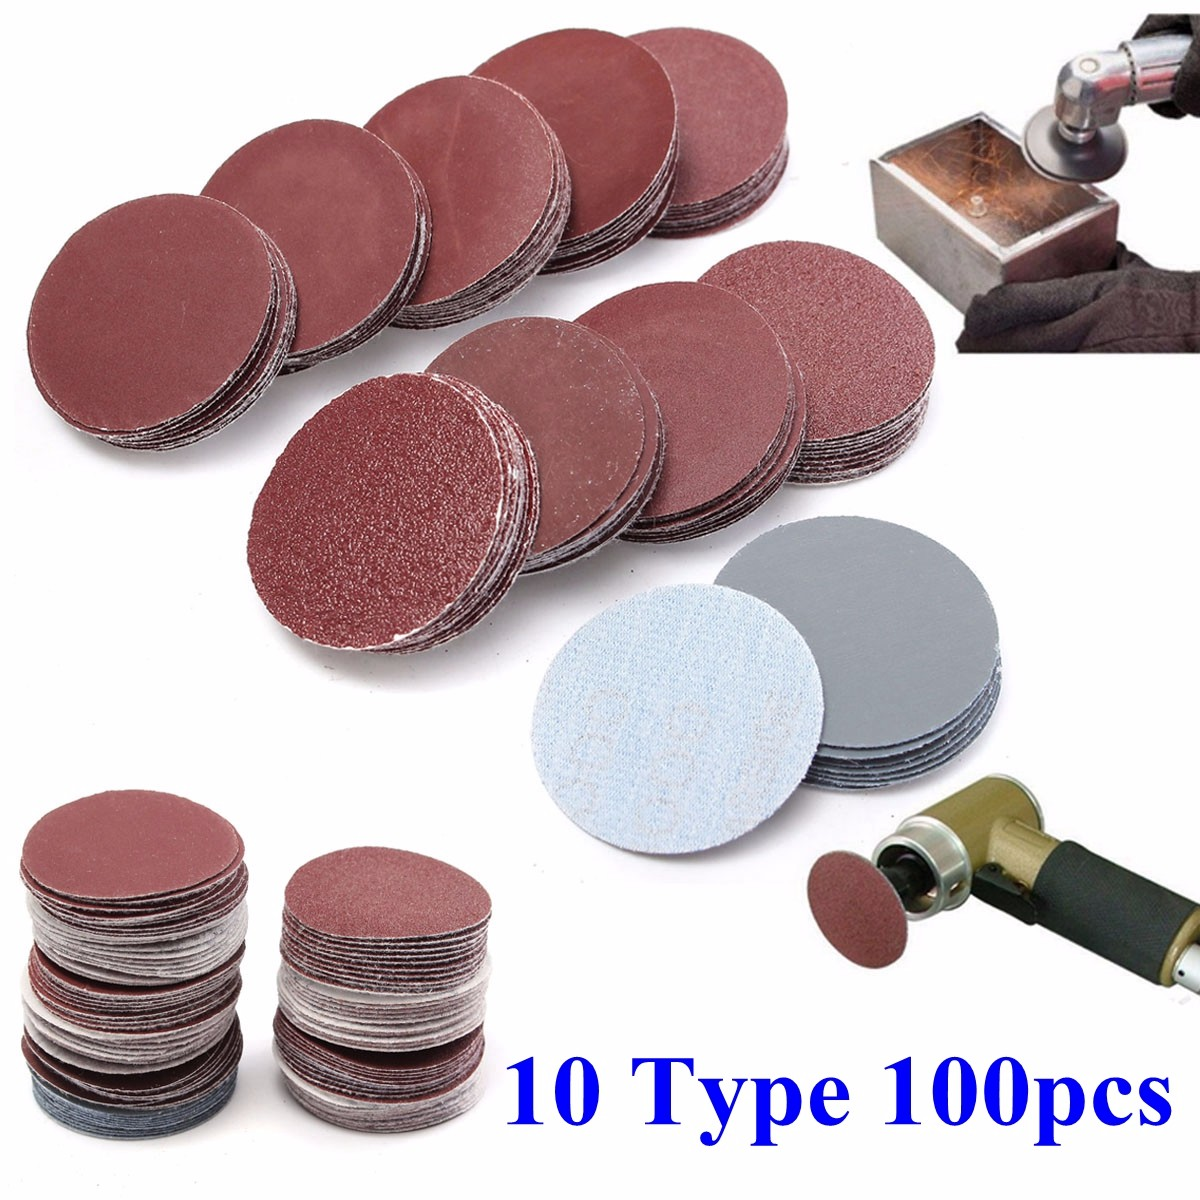 100pcs Sanding Disc 2inch 50mm Sandpaper 80 100 180 240 600 800 1000 1200 2000 3000Grit Polishing Discs Mixed Sandpaper Set